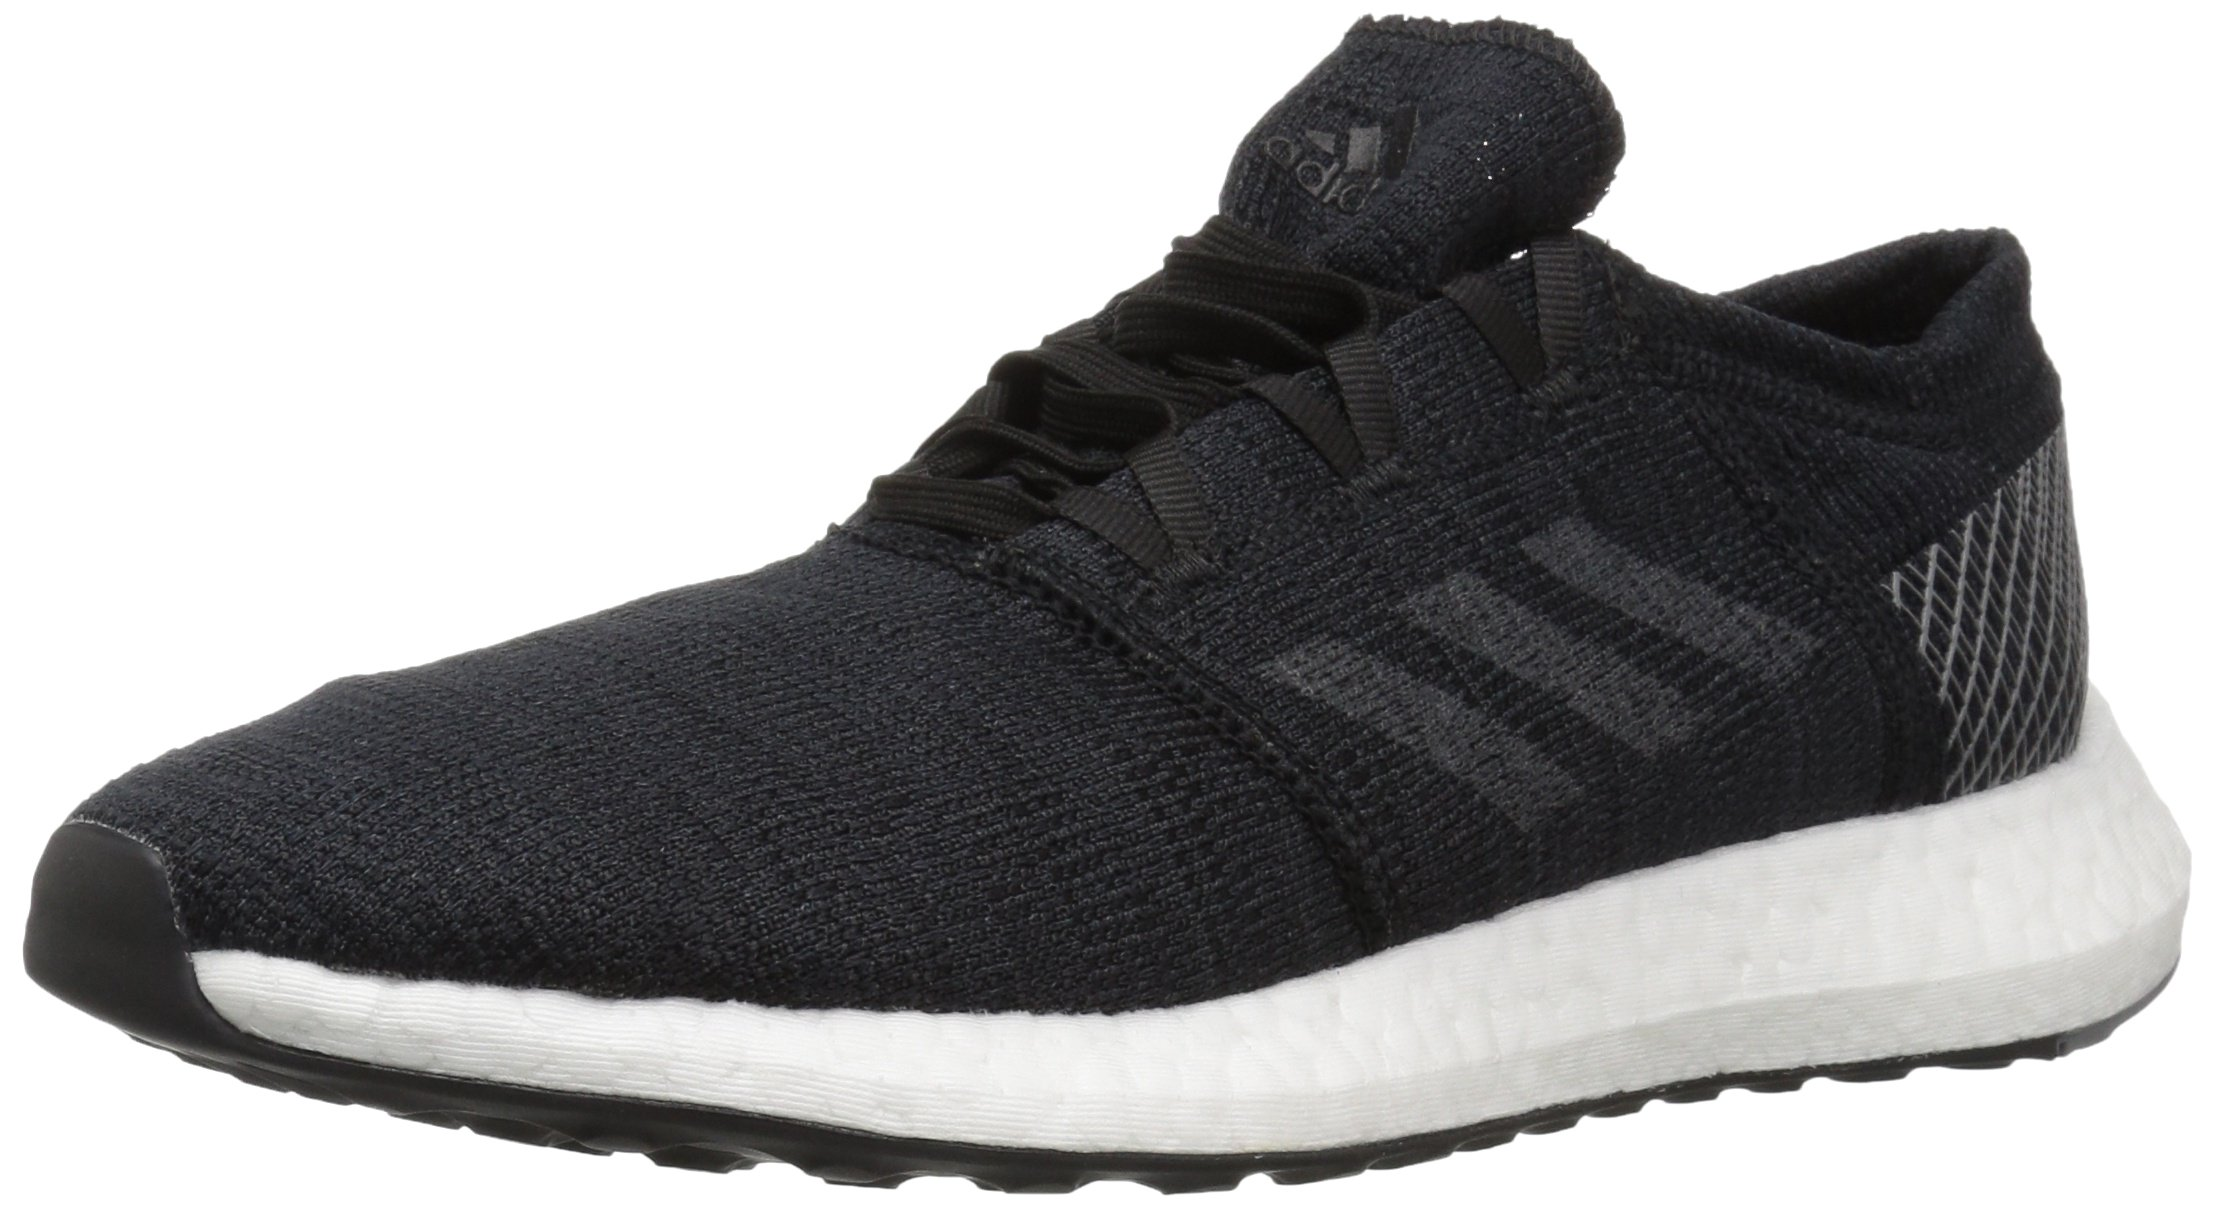 adidas Men's Pureboost Go Running Shoe, Black/Grey/Grey, 10.5 M US by adidas